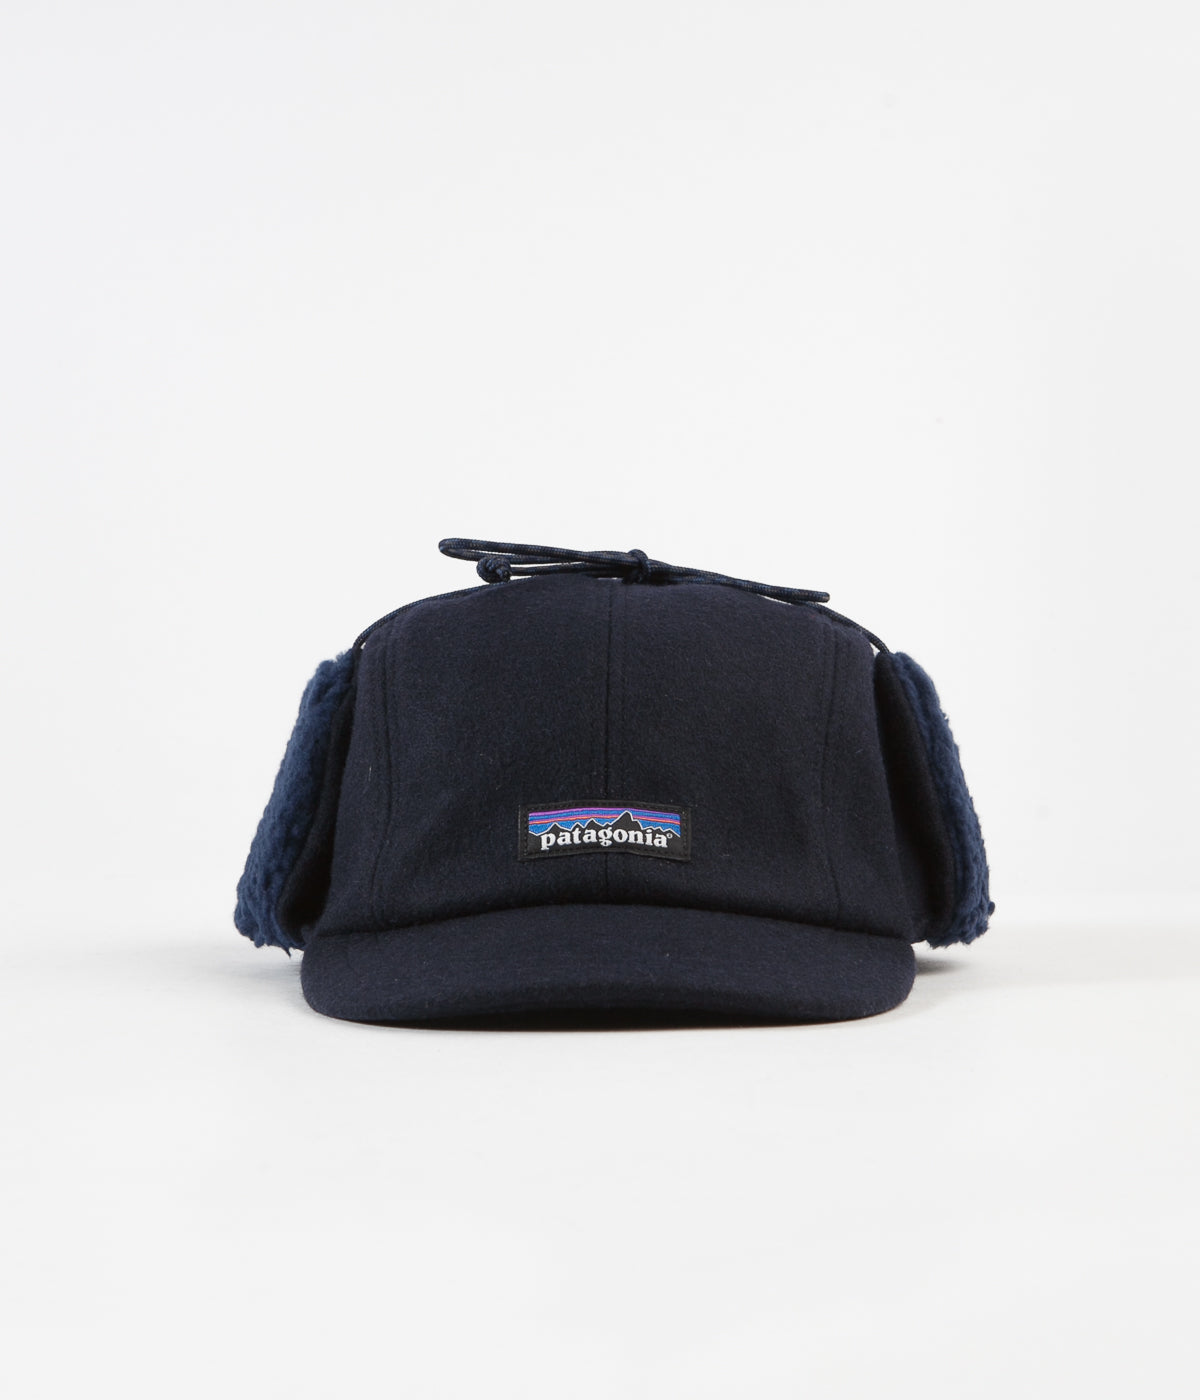 ff265bb43f203 ... Patagonia Recycled Wool Ear Flap Cap - Classic Navy ...